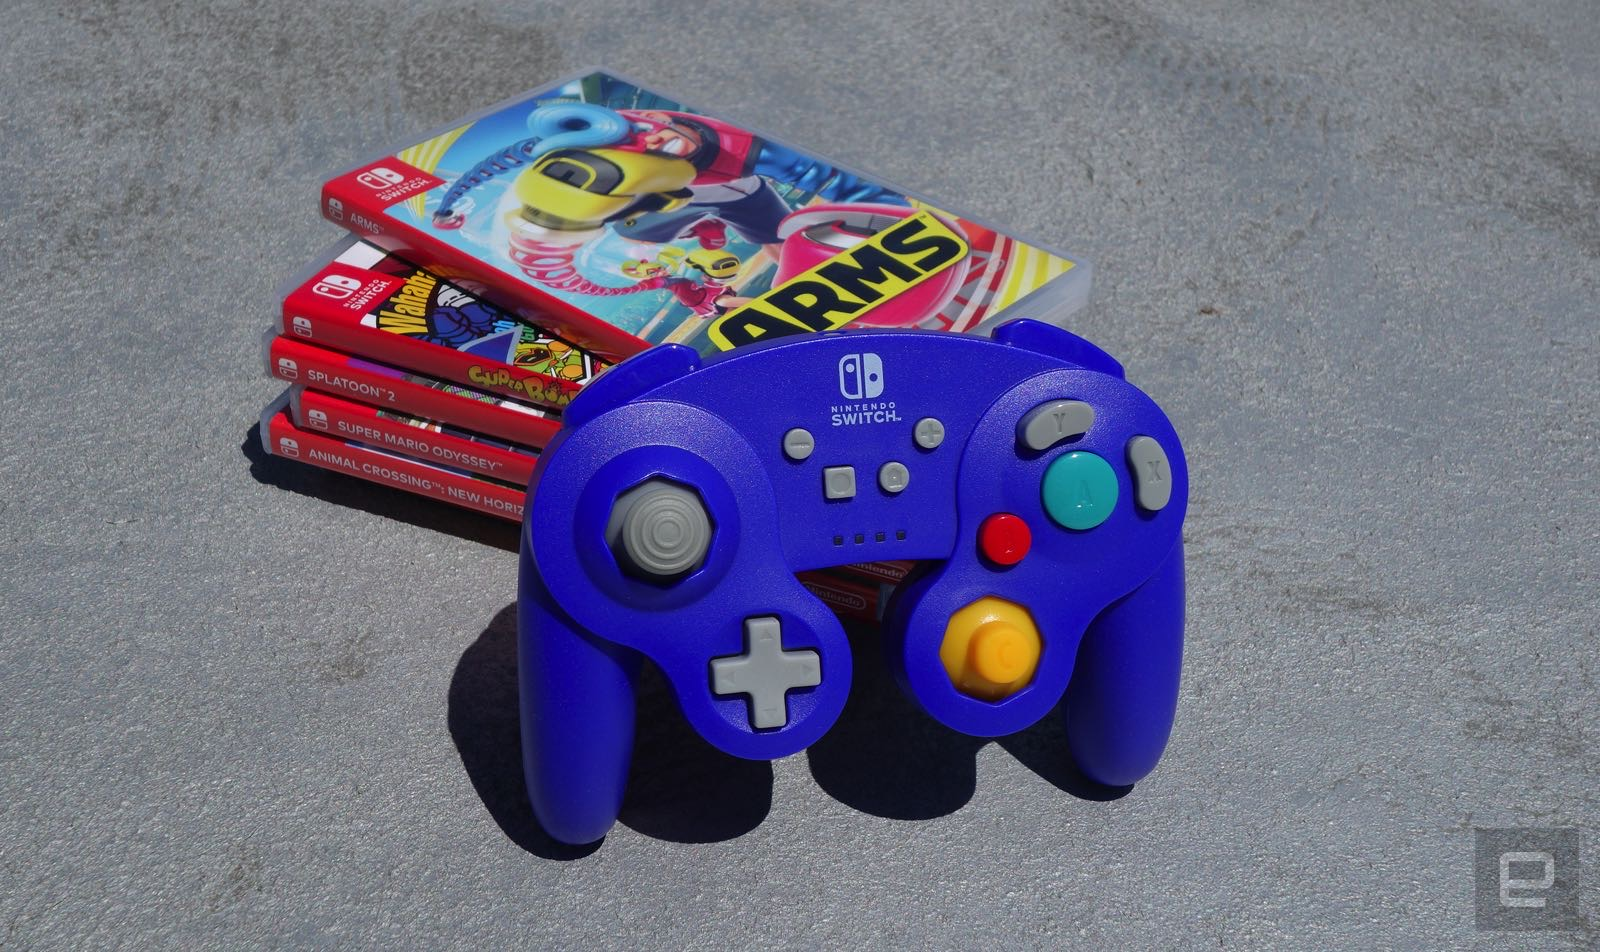 PowerA GameCube-style controller for Switch